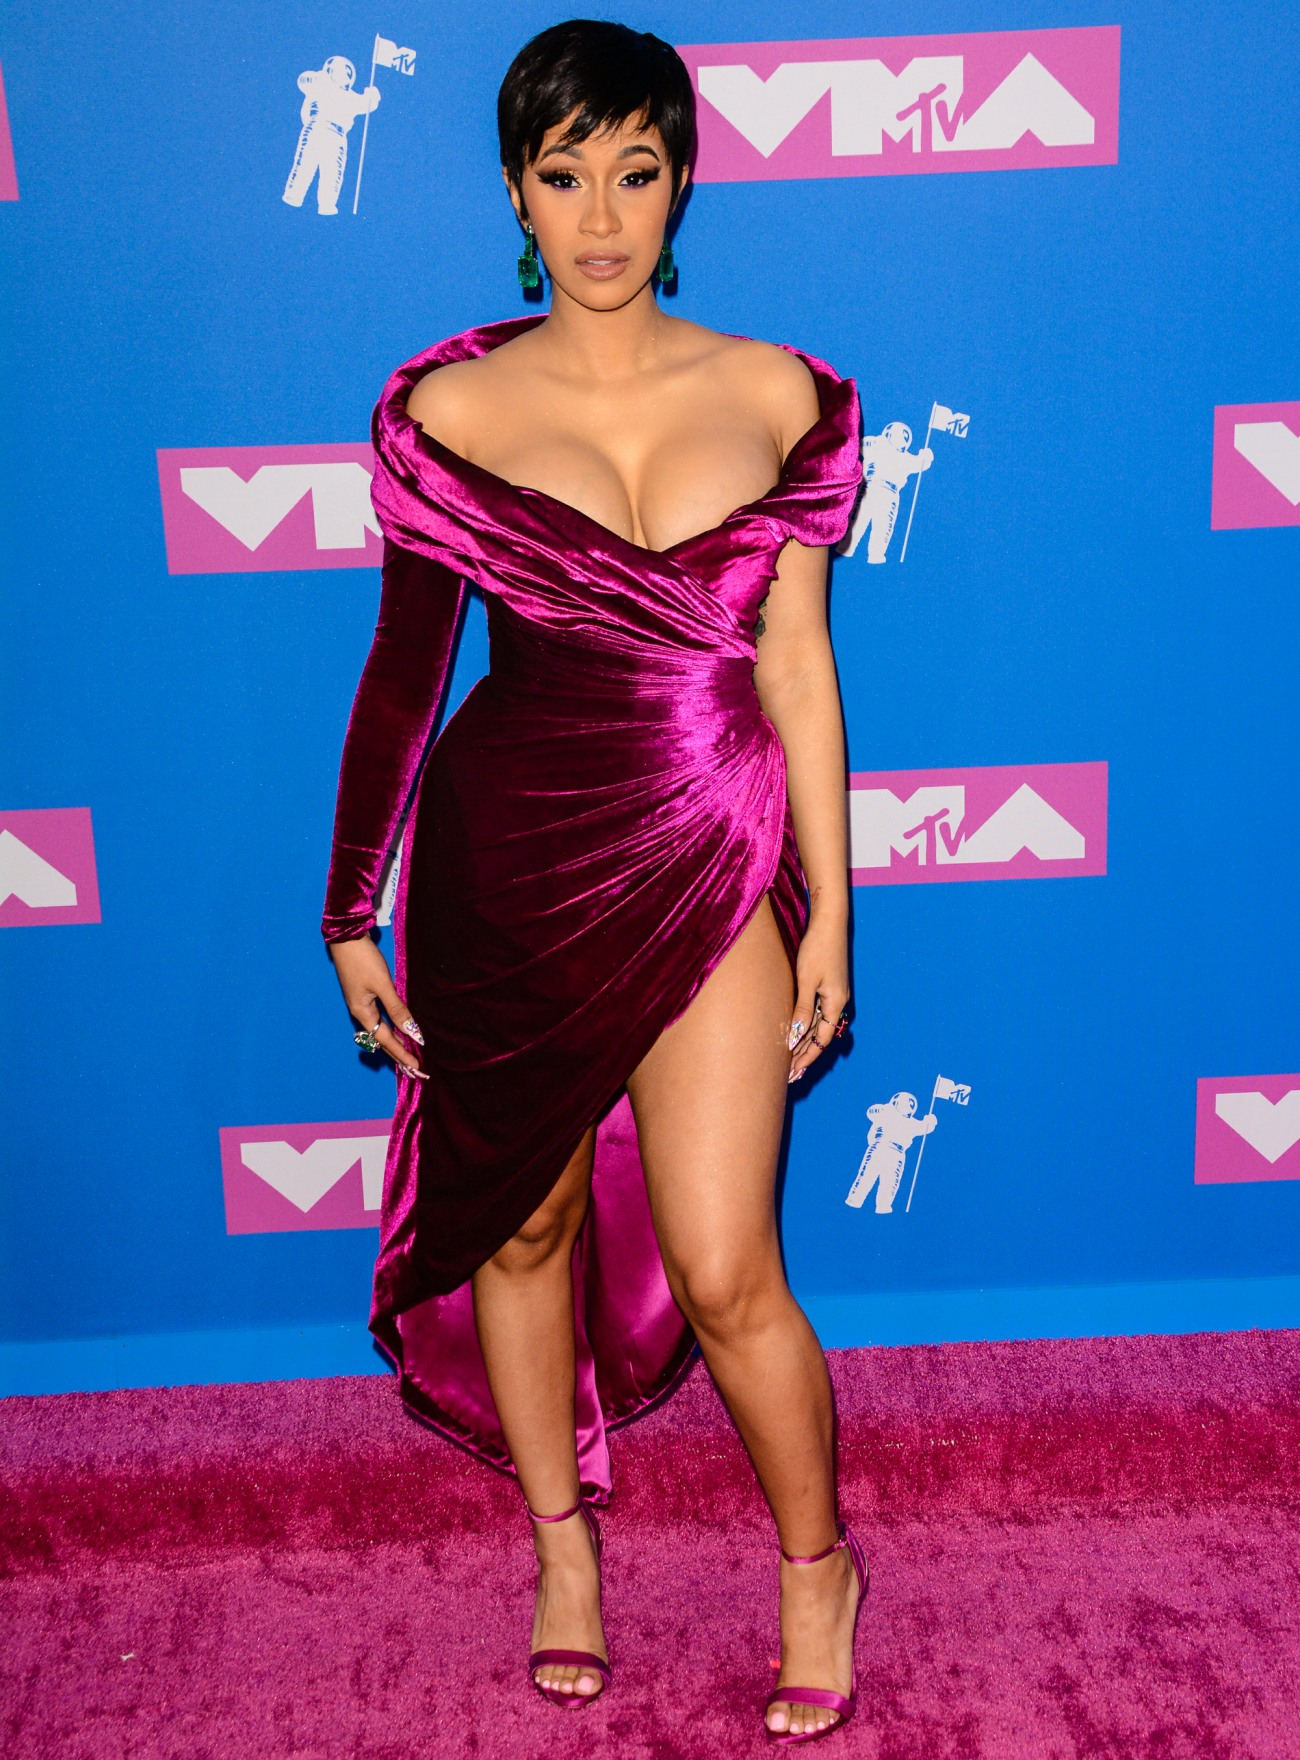 Cardi B Just Got A Giant New Offset Tattoo On Her Leg: Cardi B 'might Just Get A Little Lipo' To